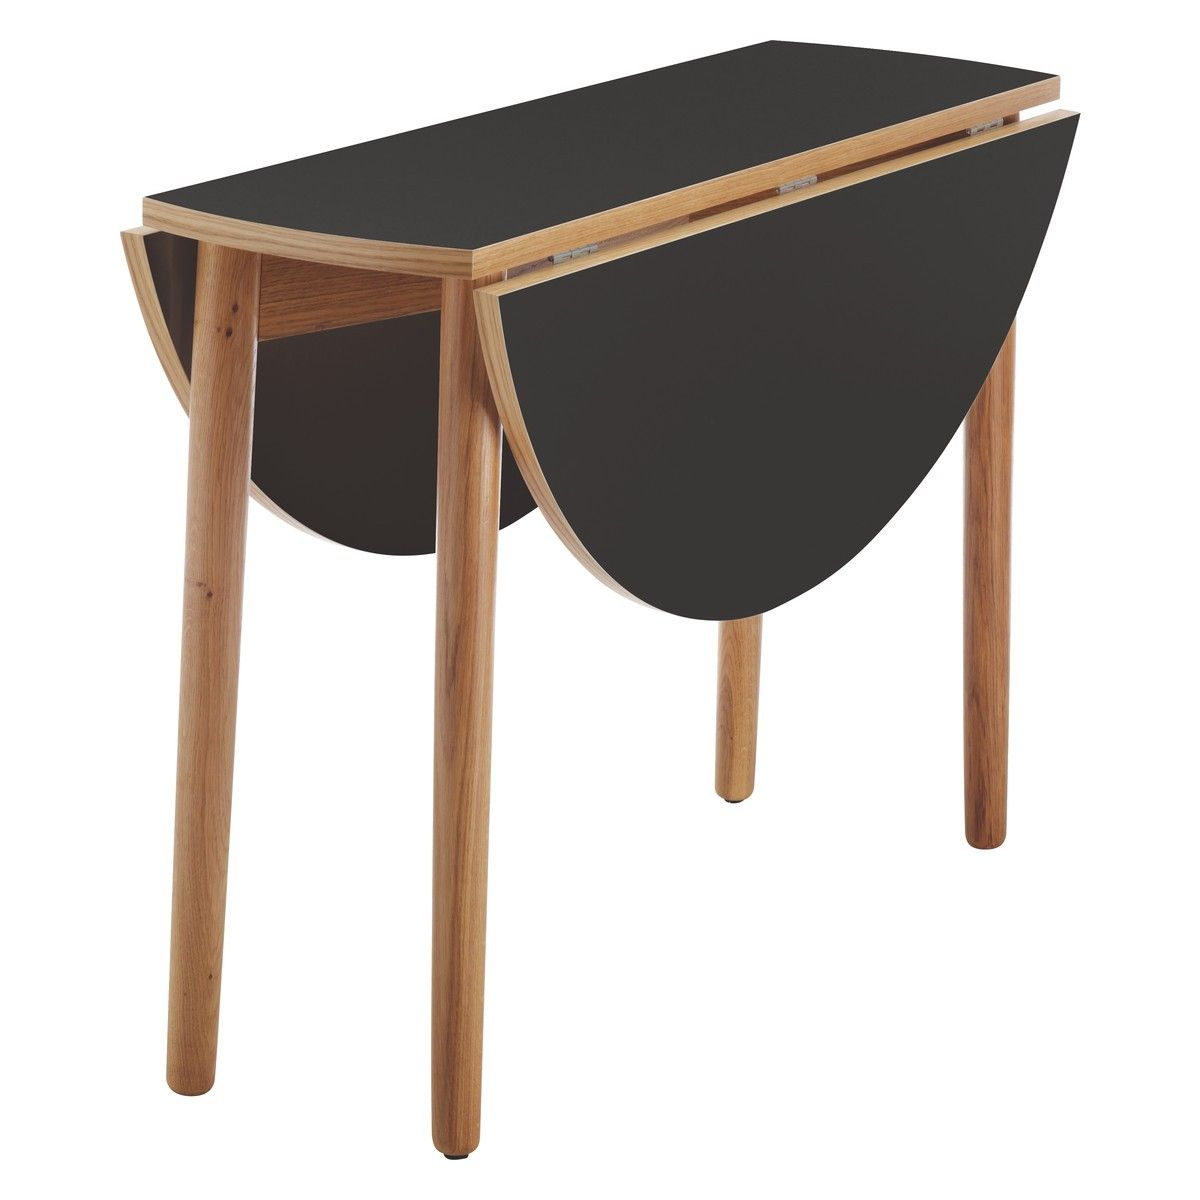 42+ Folding compact dining table and 4 chairs Ideas